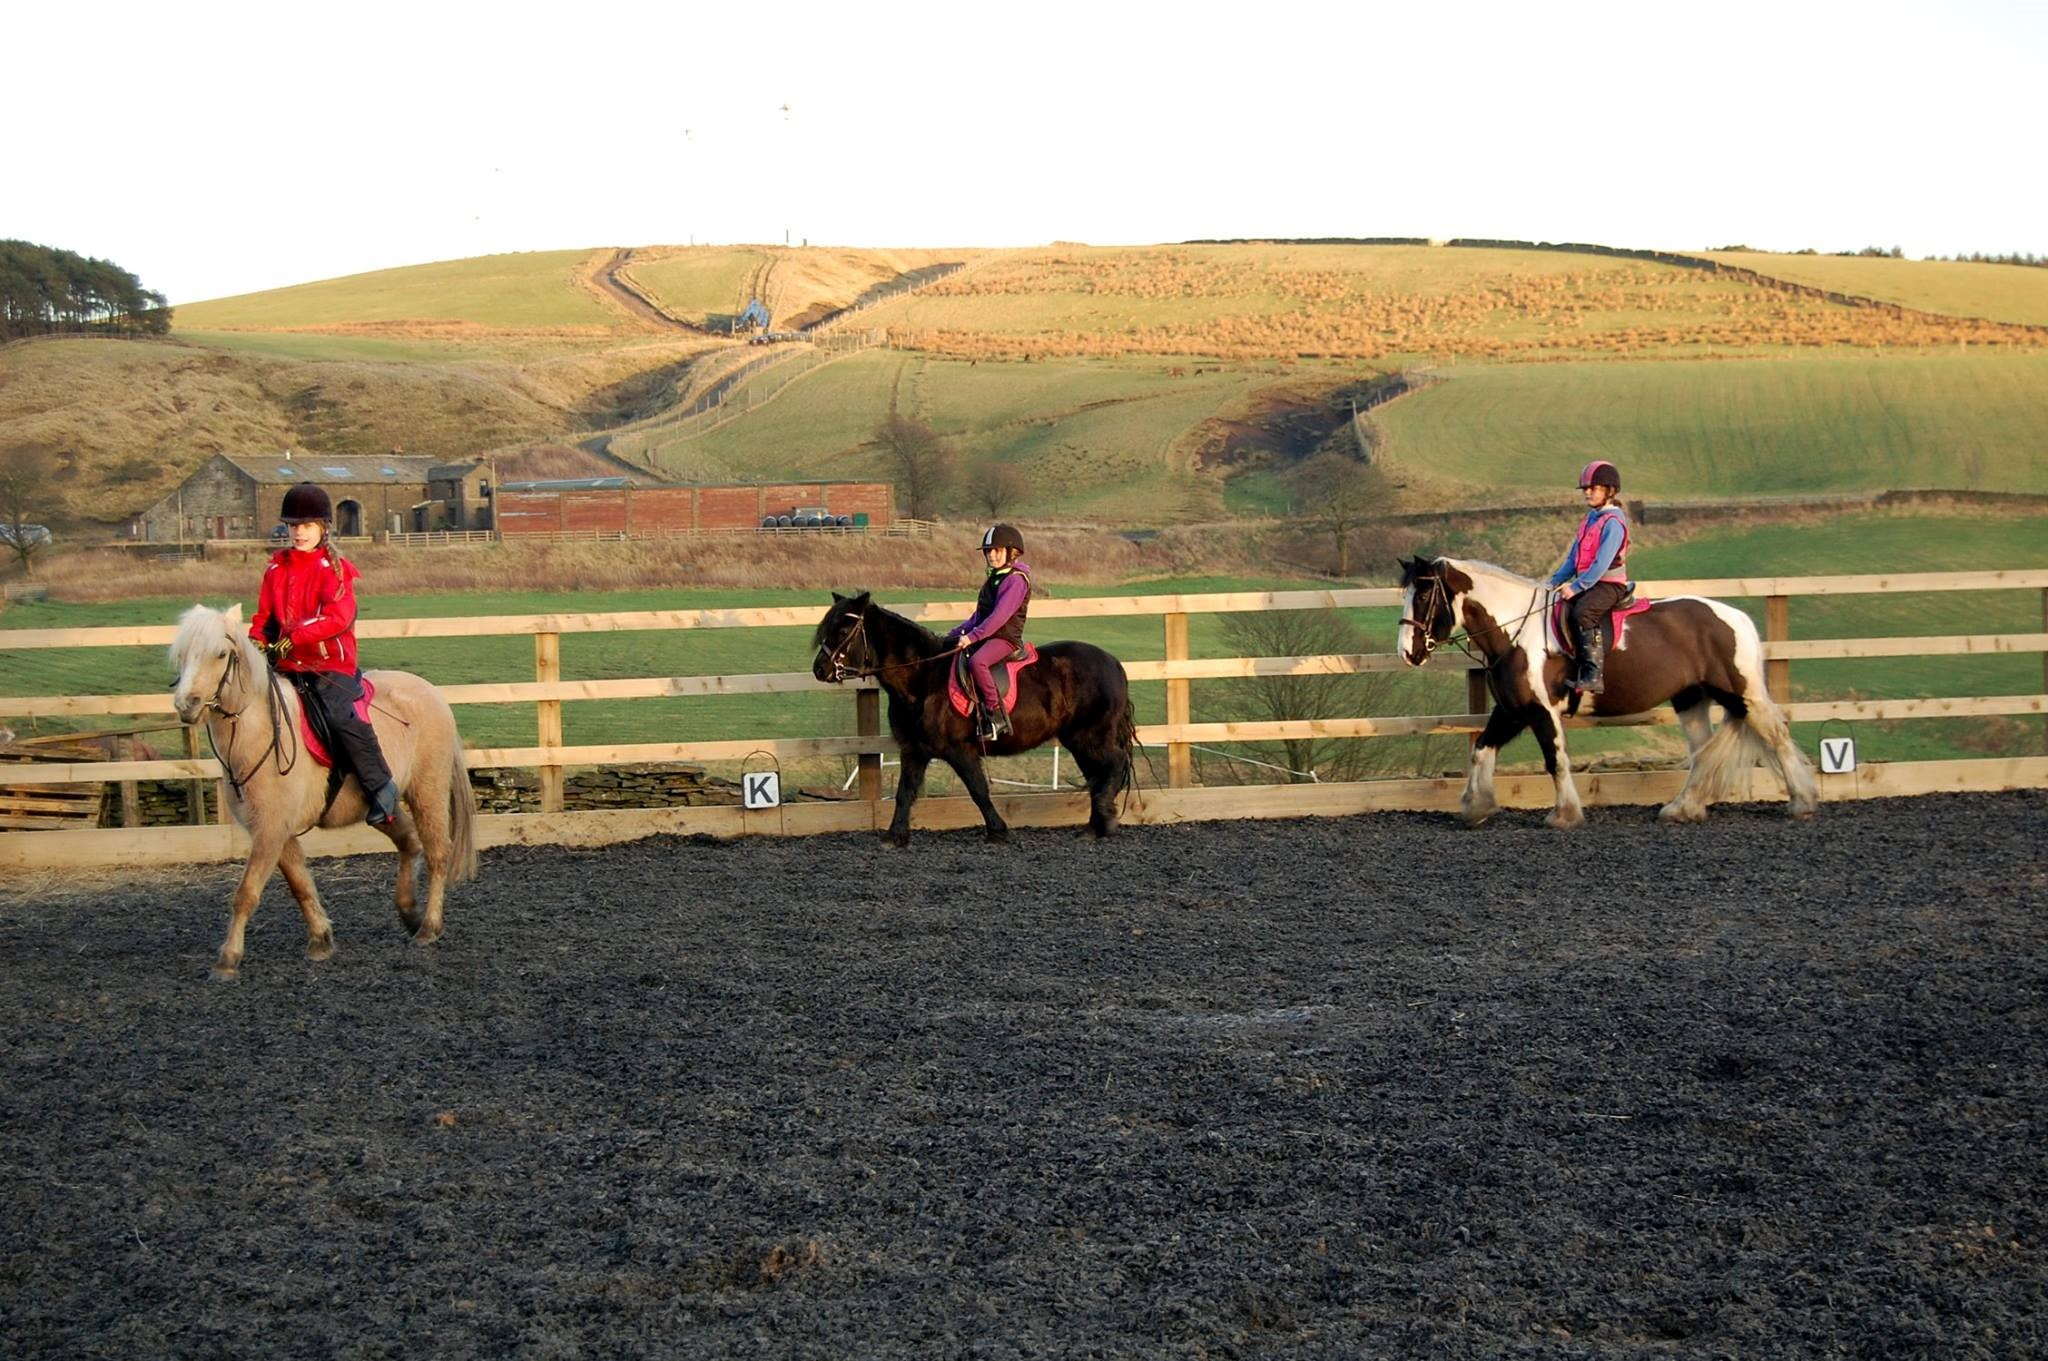 Weir Riding centre ponies for horse riding in Rossendale page on the Visit Rossendale website